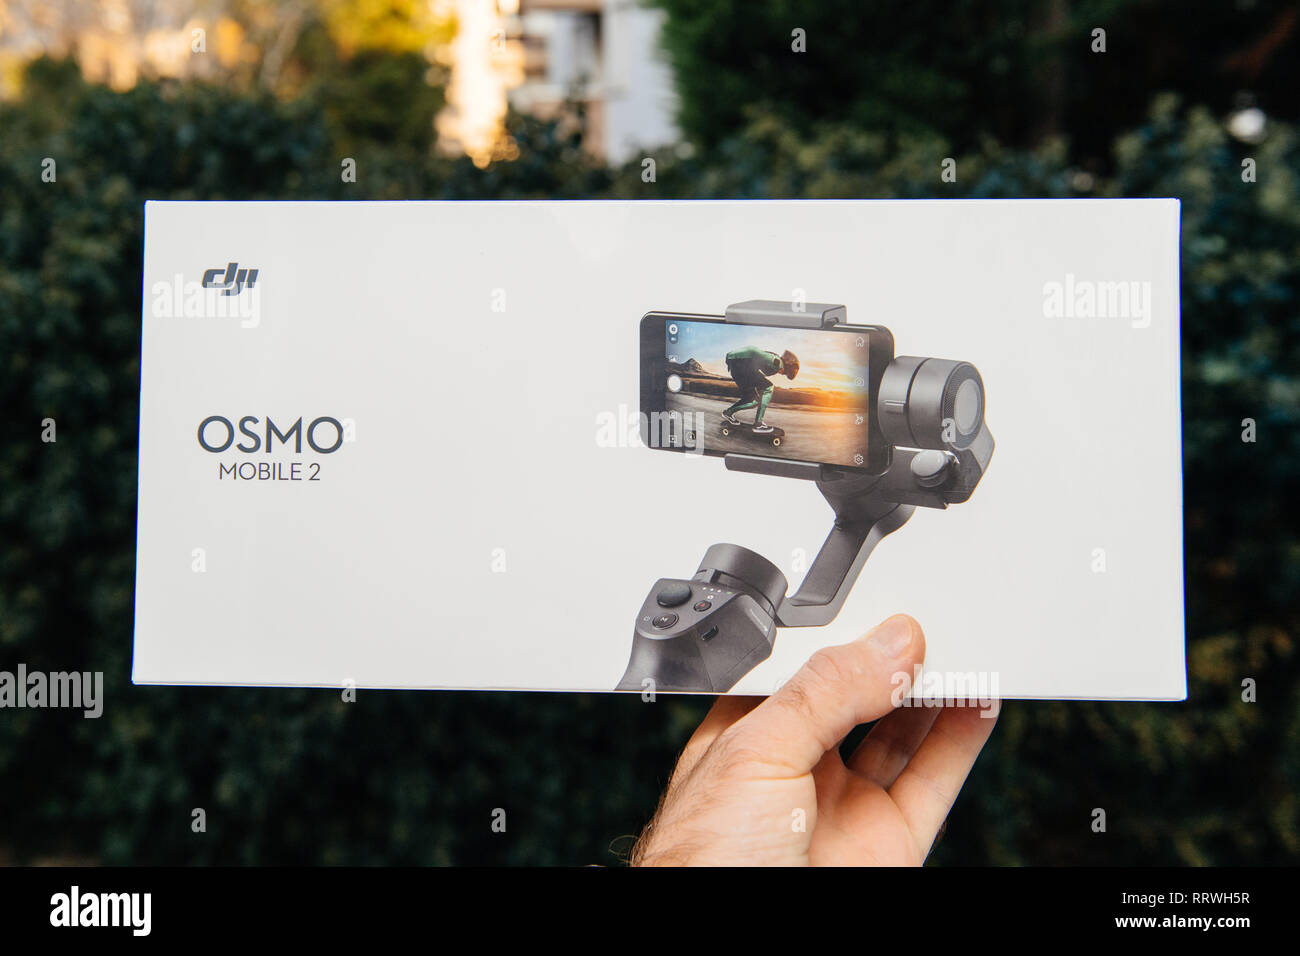 PARIS, FRANCE - NOV 22, 2018: Man hand holding in outdoor background new DJI Osmo Mobile 2 Smartphone Gimbal manufactured by the SZ DJI Technology Co., Ltd company - front packaging featuring device - Stock Image